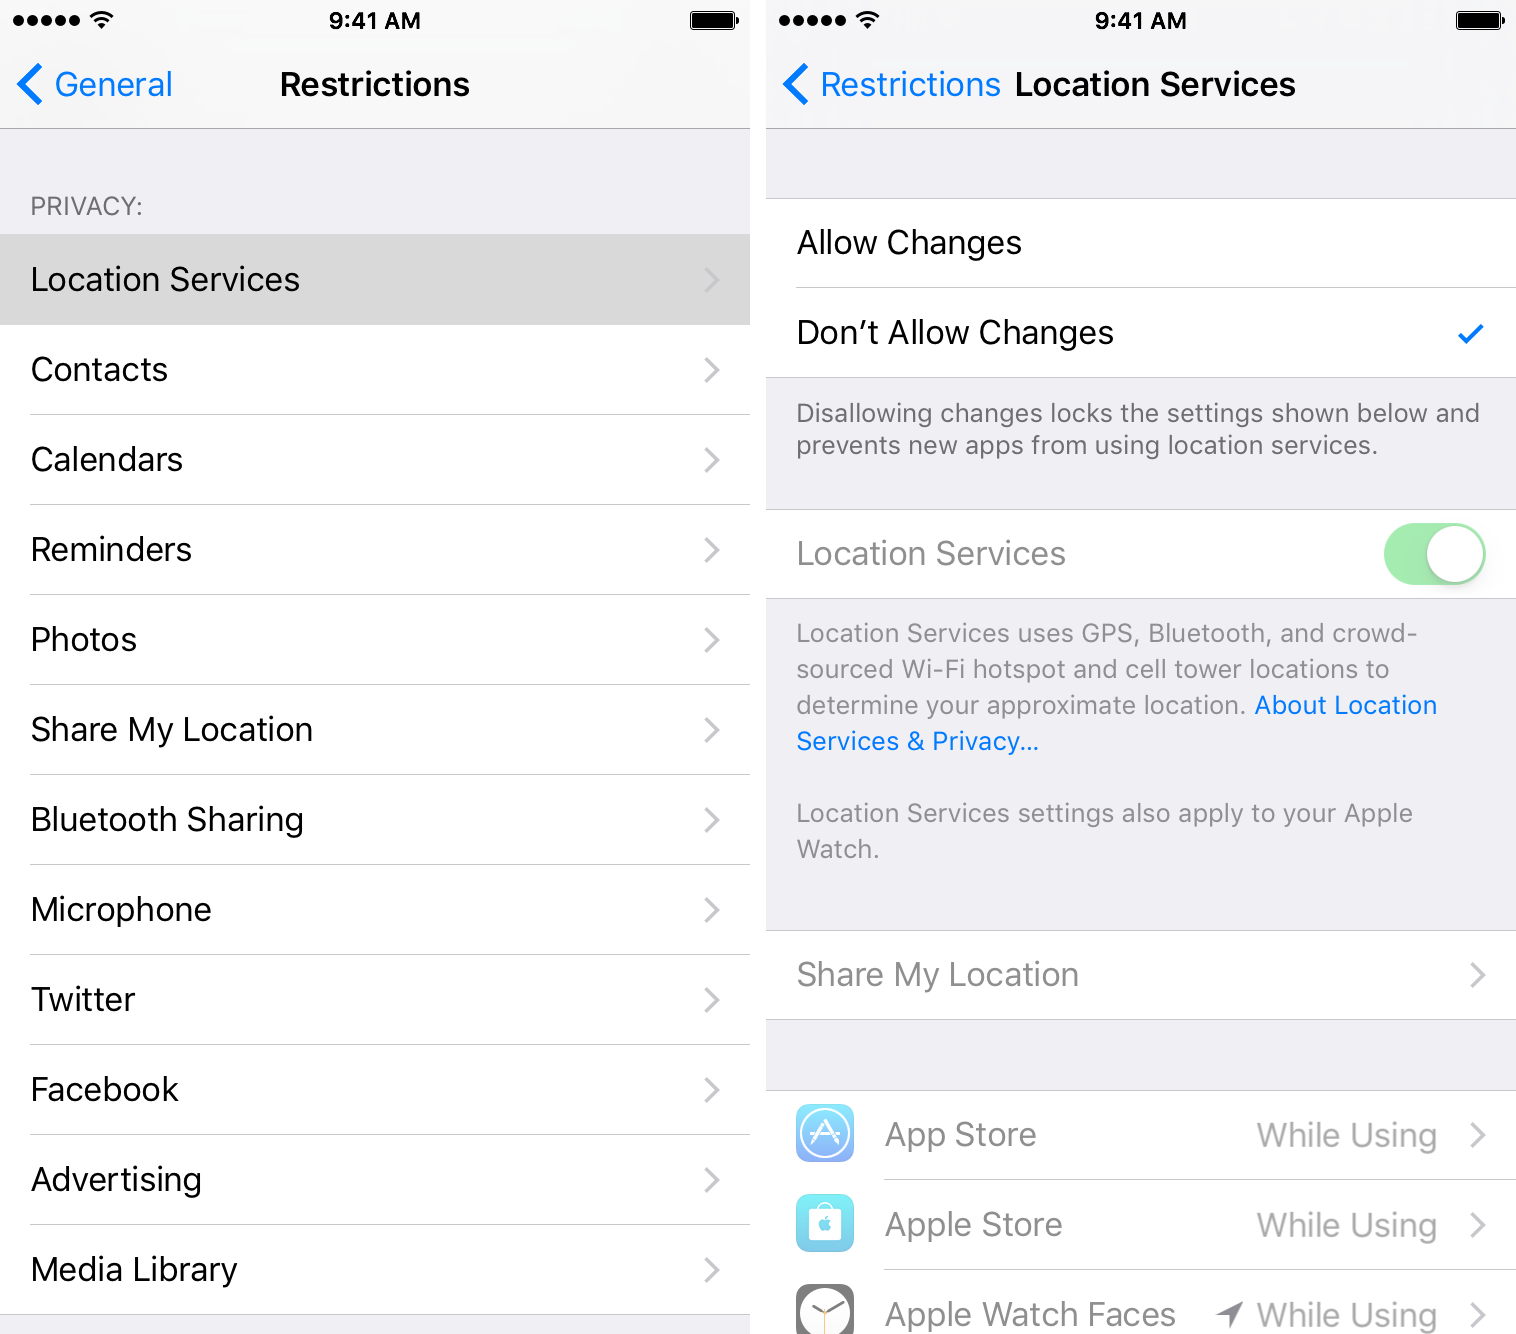 Don't allow changes to location services restrictions